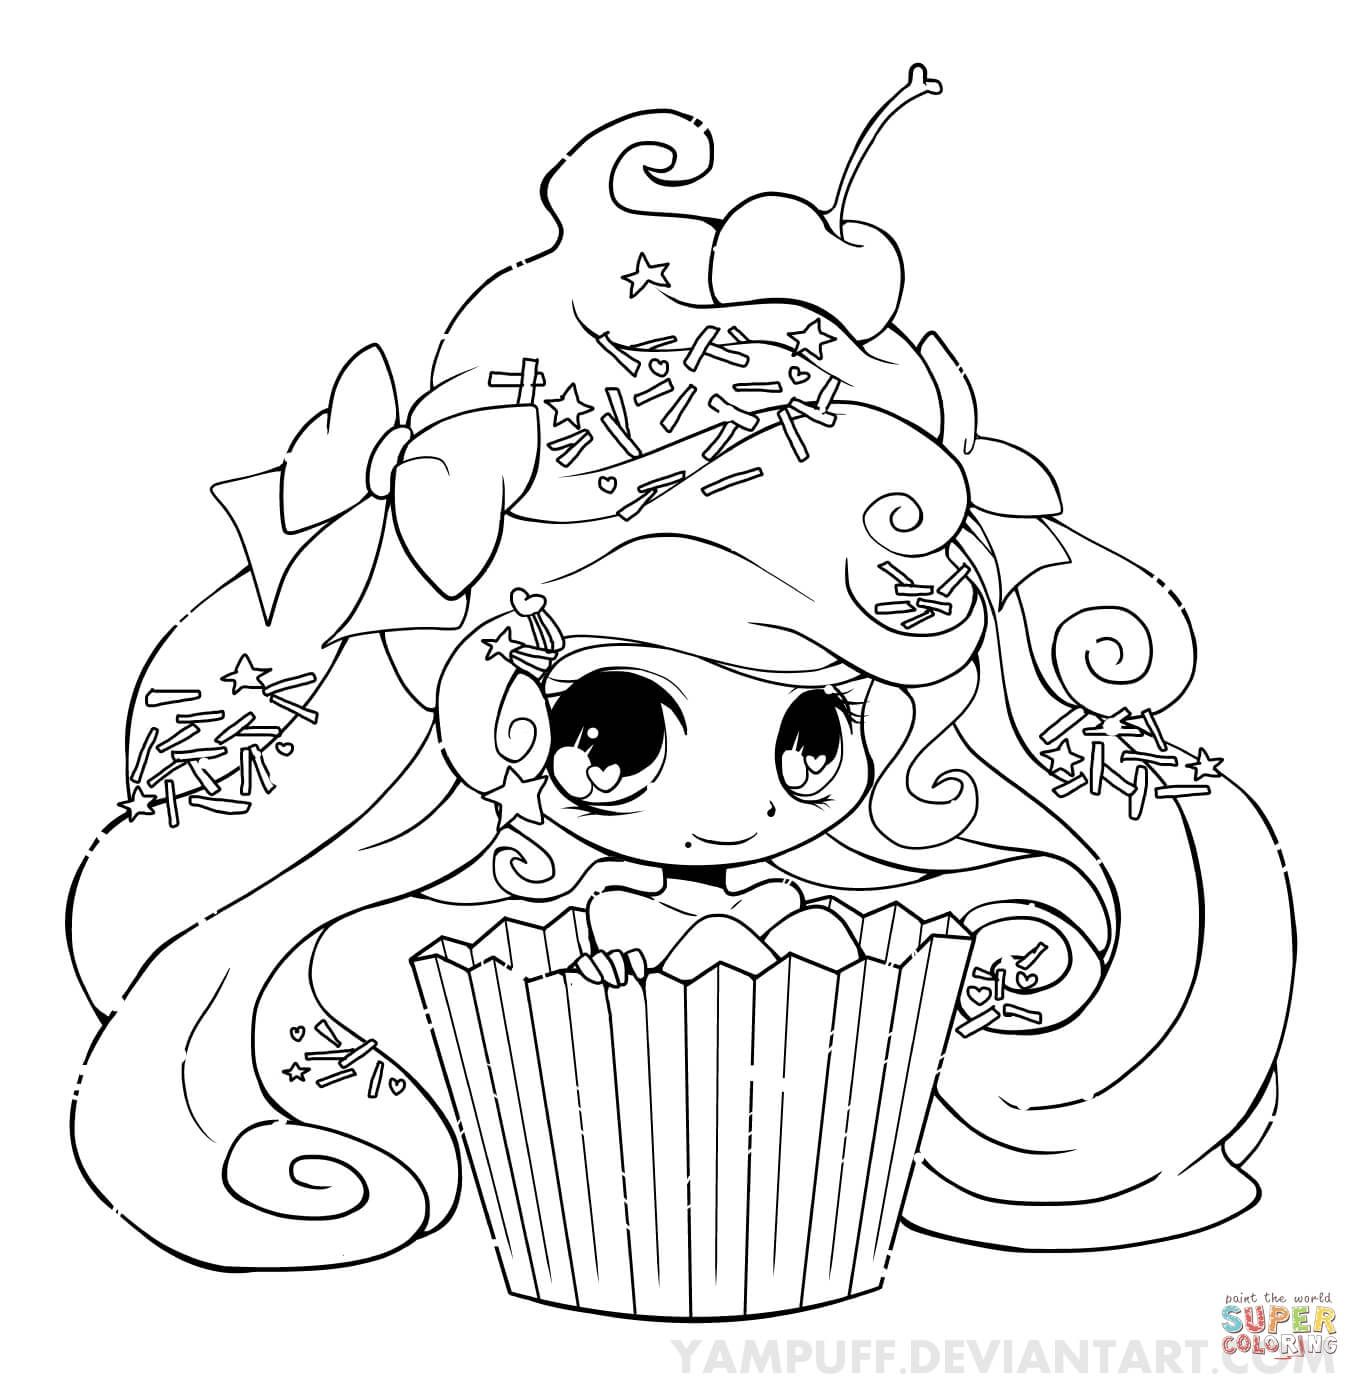 Chibi Cupcake Girl Coloring Page From Anime Girls Category